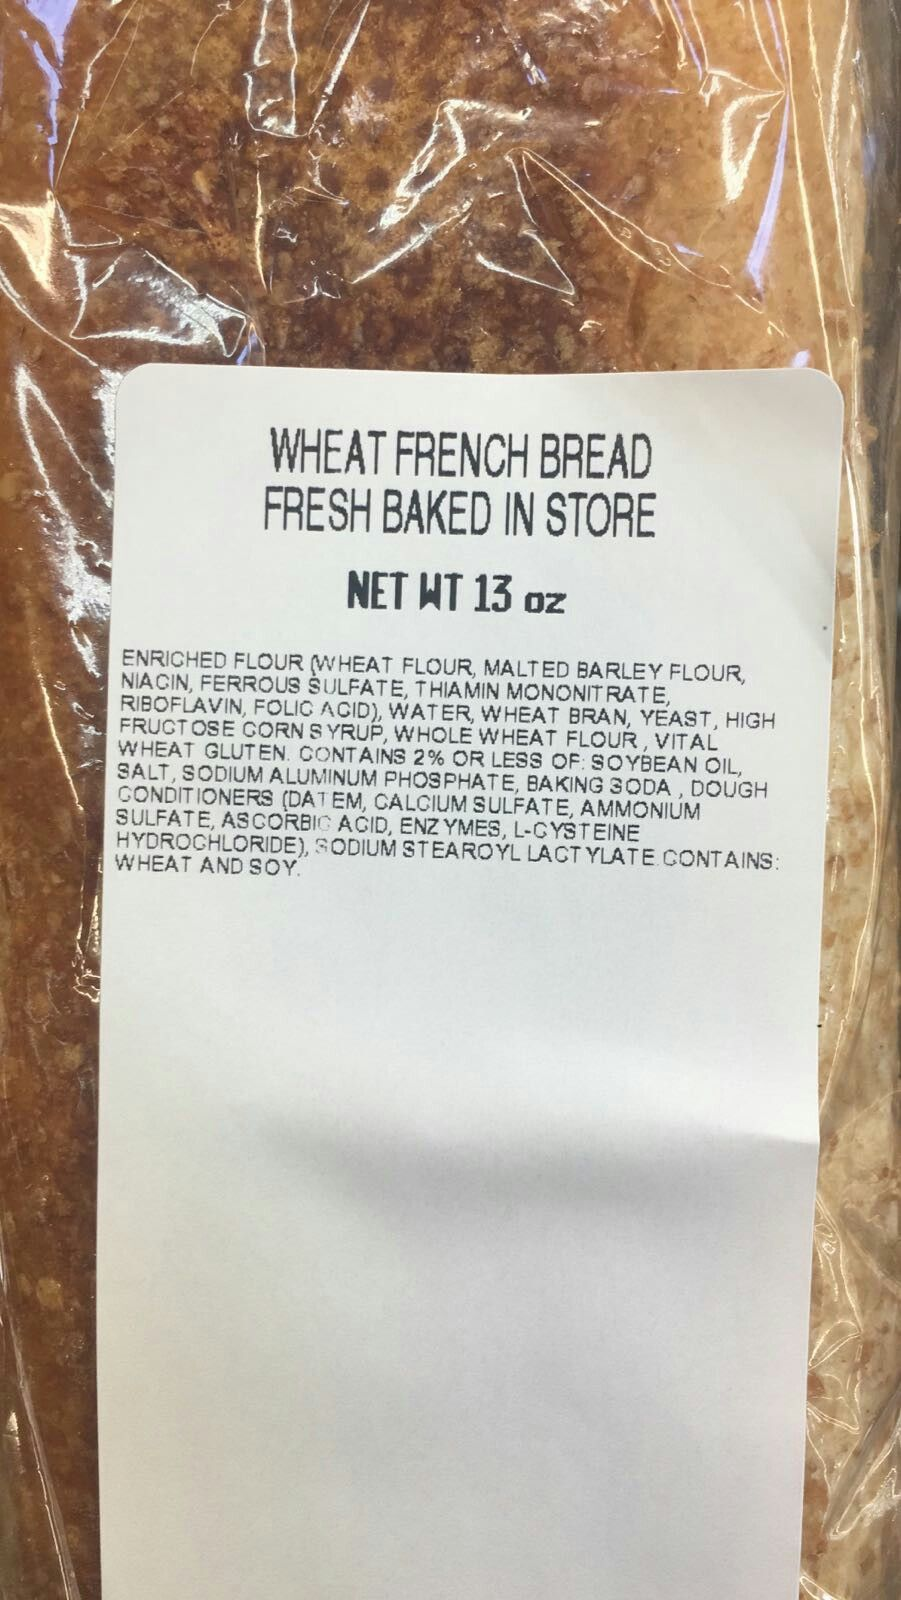 Walmart Bakery Fresh Wheat French Bread Is Vegetarian And Halal Verified On 11 30 2017 I Called The Number Package All Ingredients Are Plant Derived